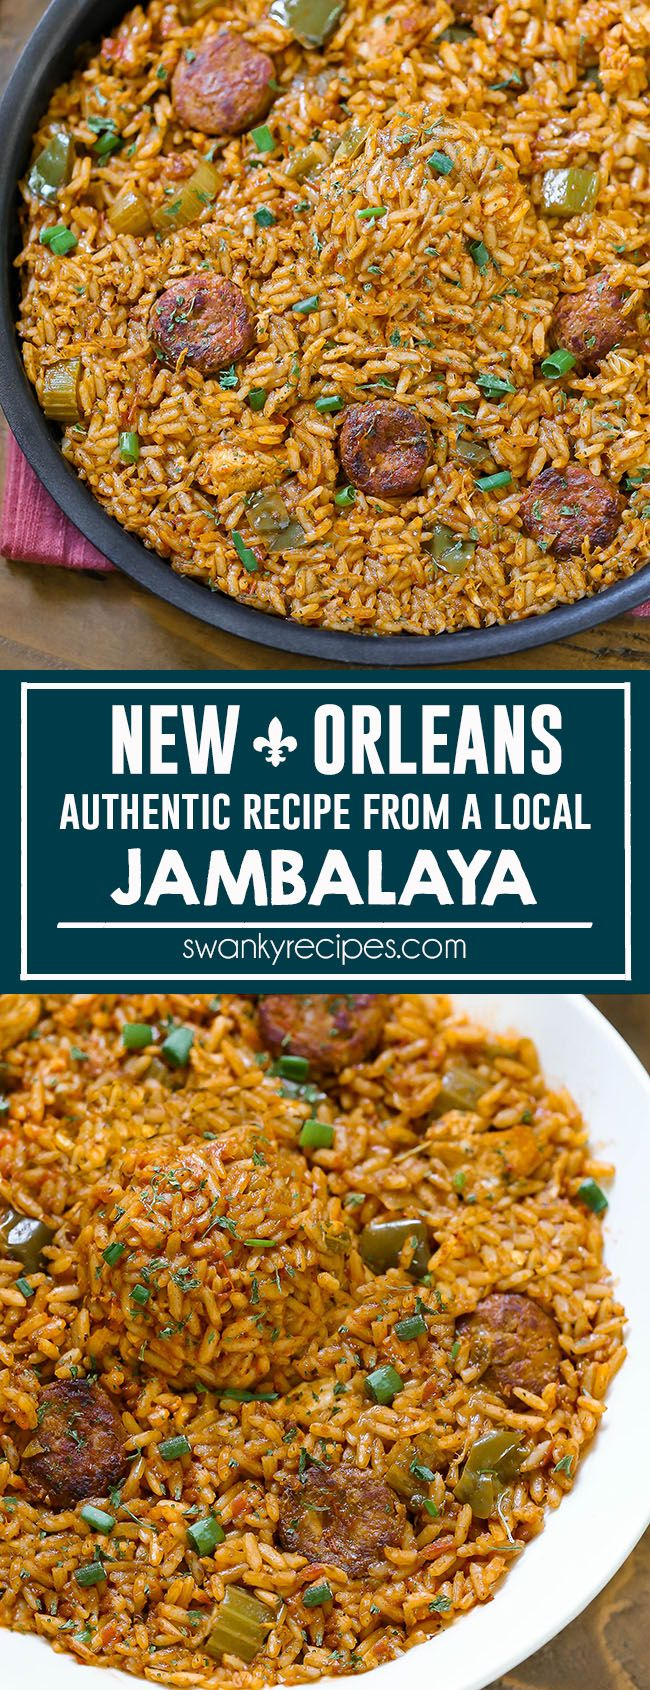 Jambalaya - Classic Creole Jambalaya recipe with chicken and andouille cajun sausage from a New Orleans, Louisiana local. A flavorful tomato rice dish with local French Quarter taste. Jambalaya I creole recipes I cajun recipes I southern cooking #neworleansrecipes #jambalaya #creole